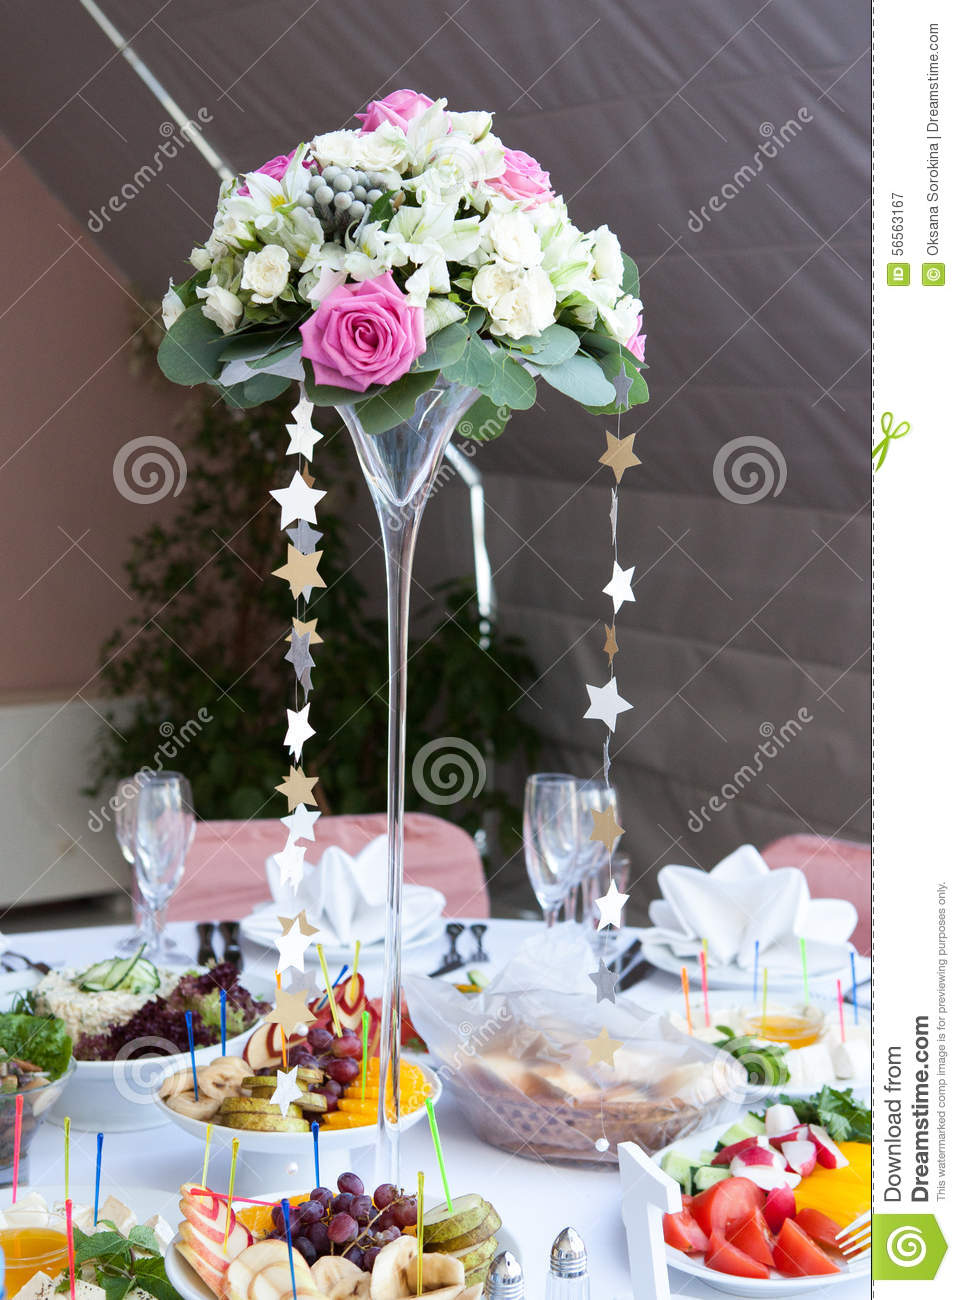 fleurs table mariage. Black Bedroom Furniture Sets. Home Design Ideas